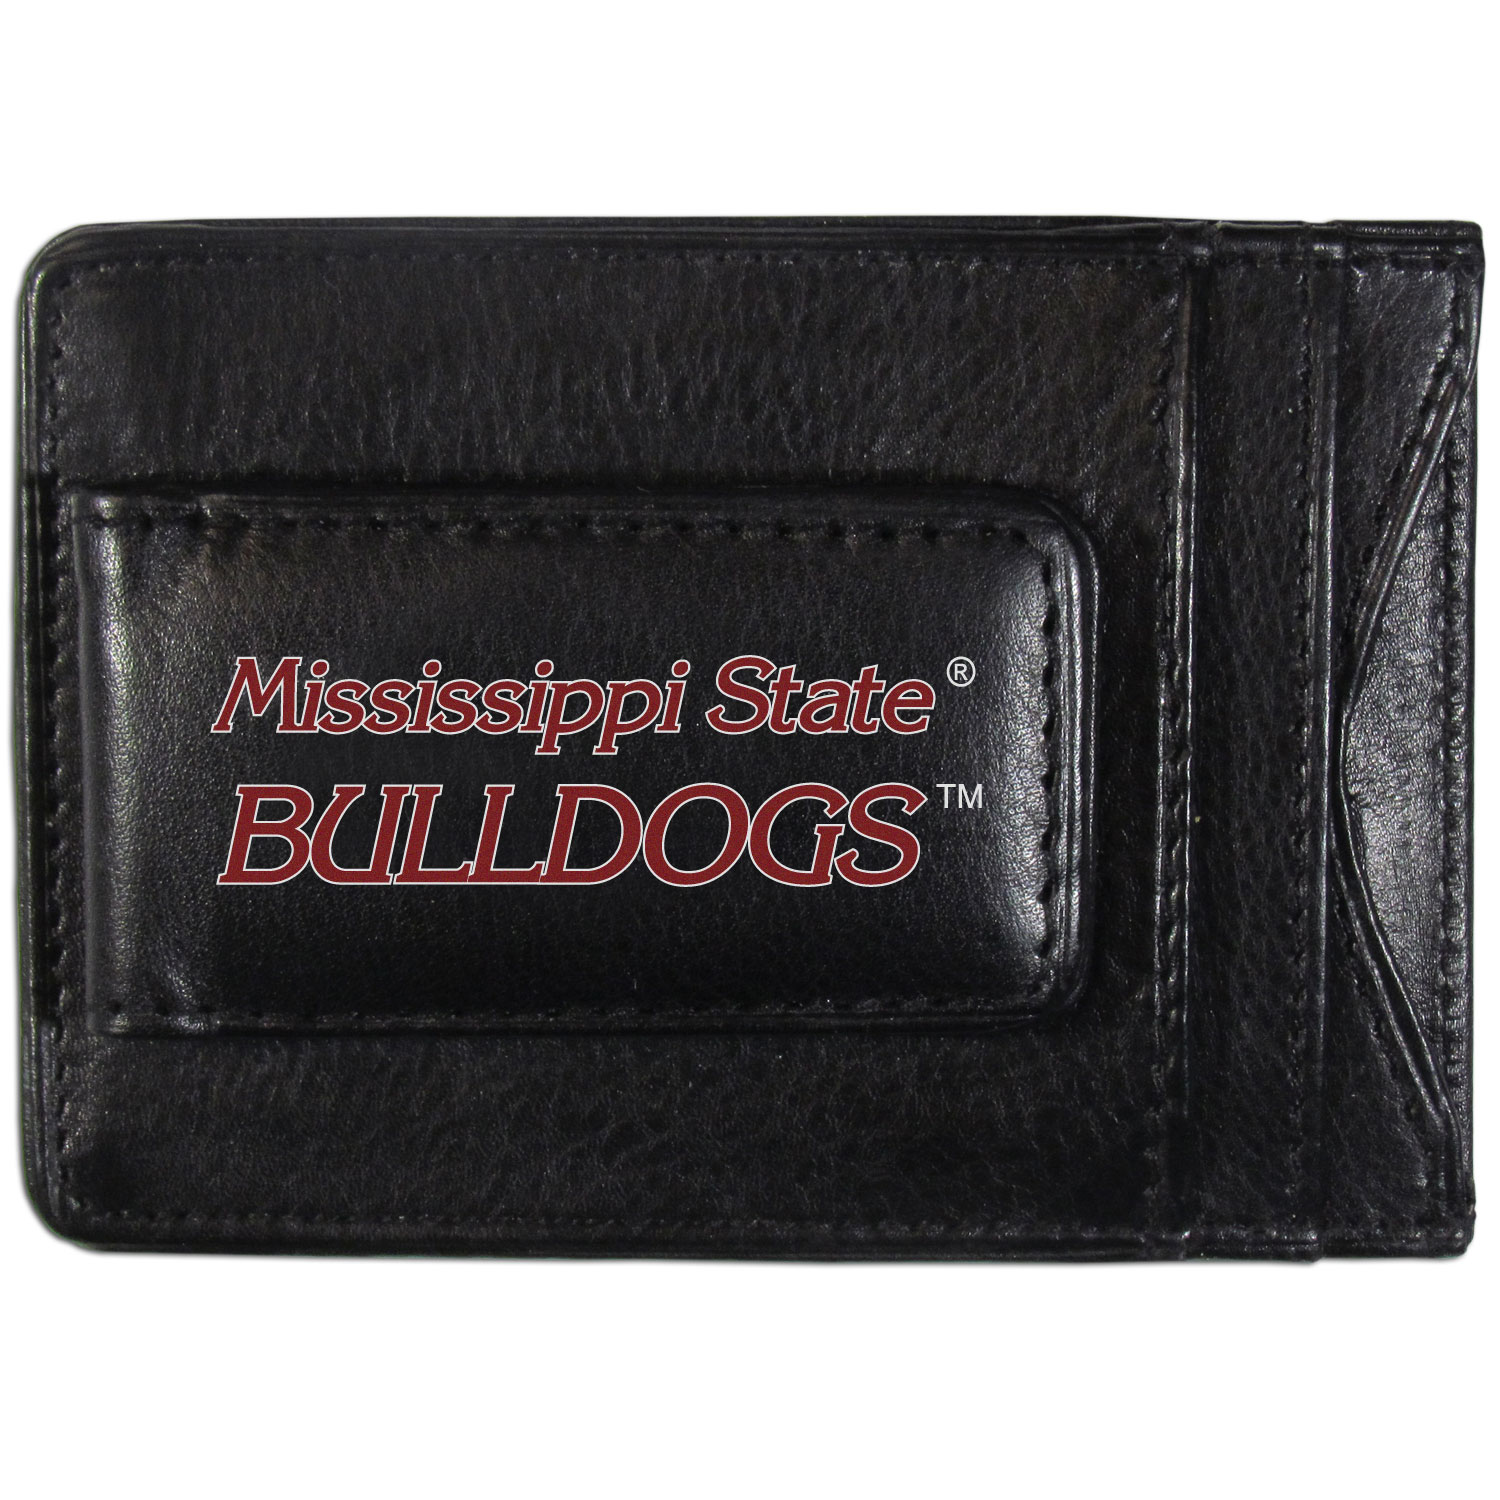 Mississippi St. Bulldogs Logo Leather Cash and Cardholder - This super slim leather wallet lets you have all the benefits of a money clip while keeping the organization of a wallet. On one side of this front pocket wallet there is a strong, magnetic money clip to keep your cash easily accessible and the?Mississippi St. Bulldogs team logo on the front. The versatile men's accessory is a perfect addition to your fan apparel.